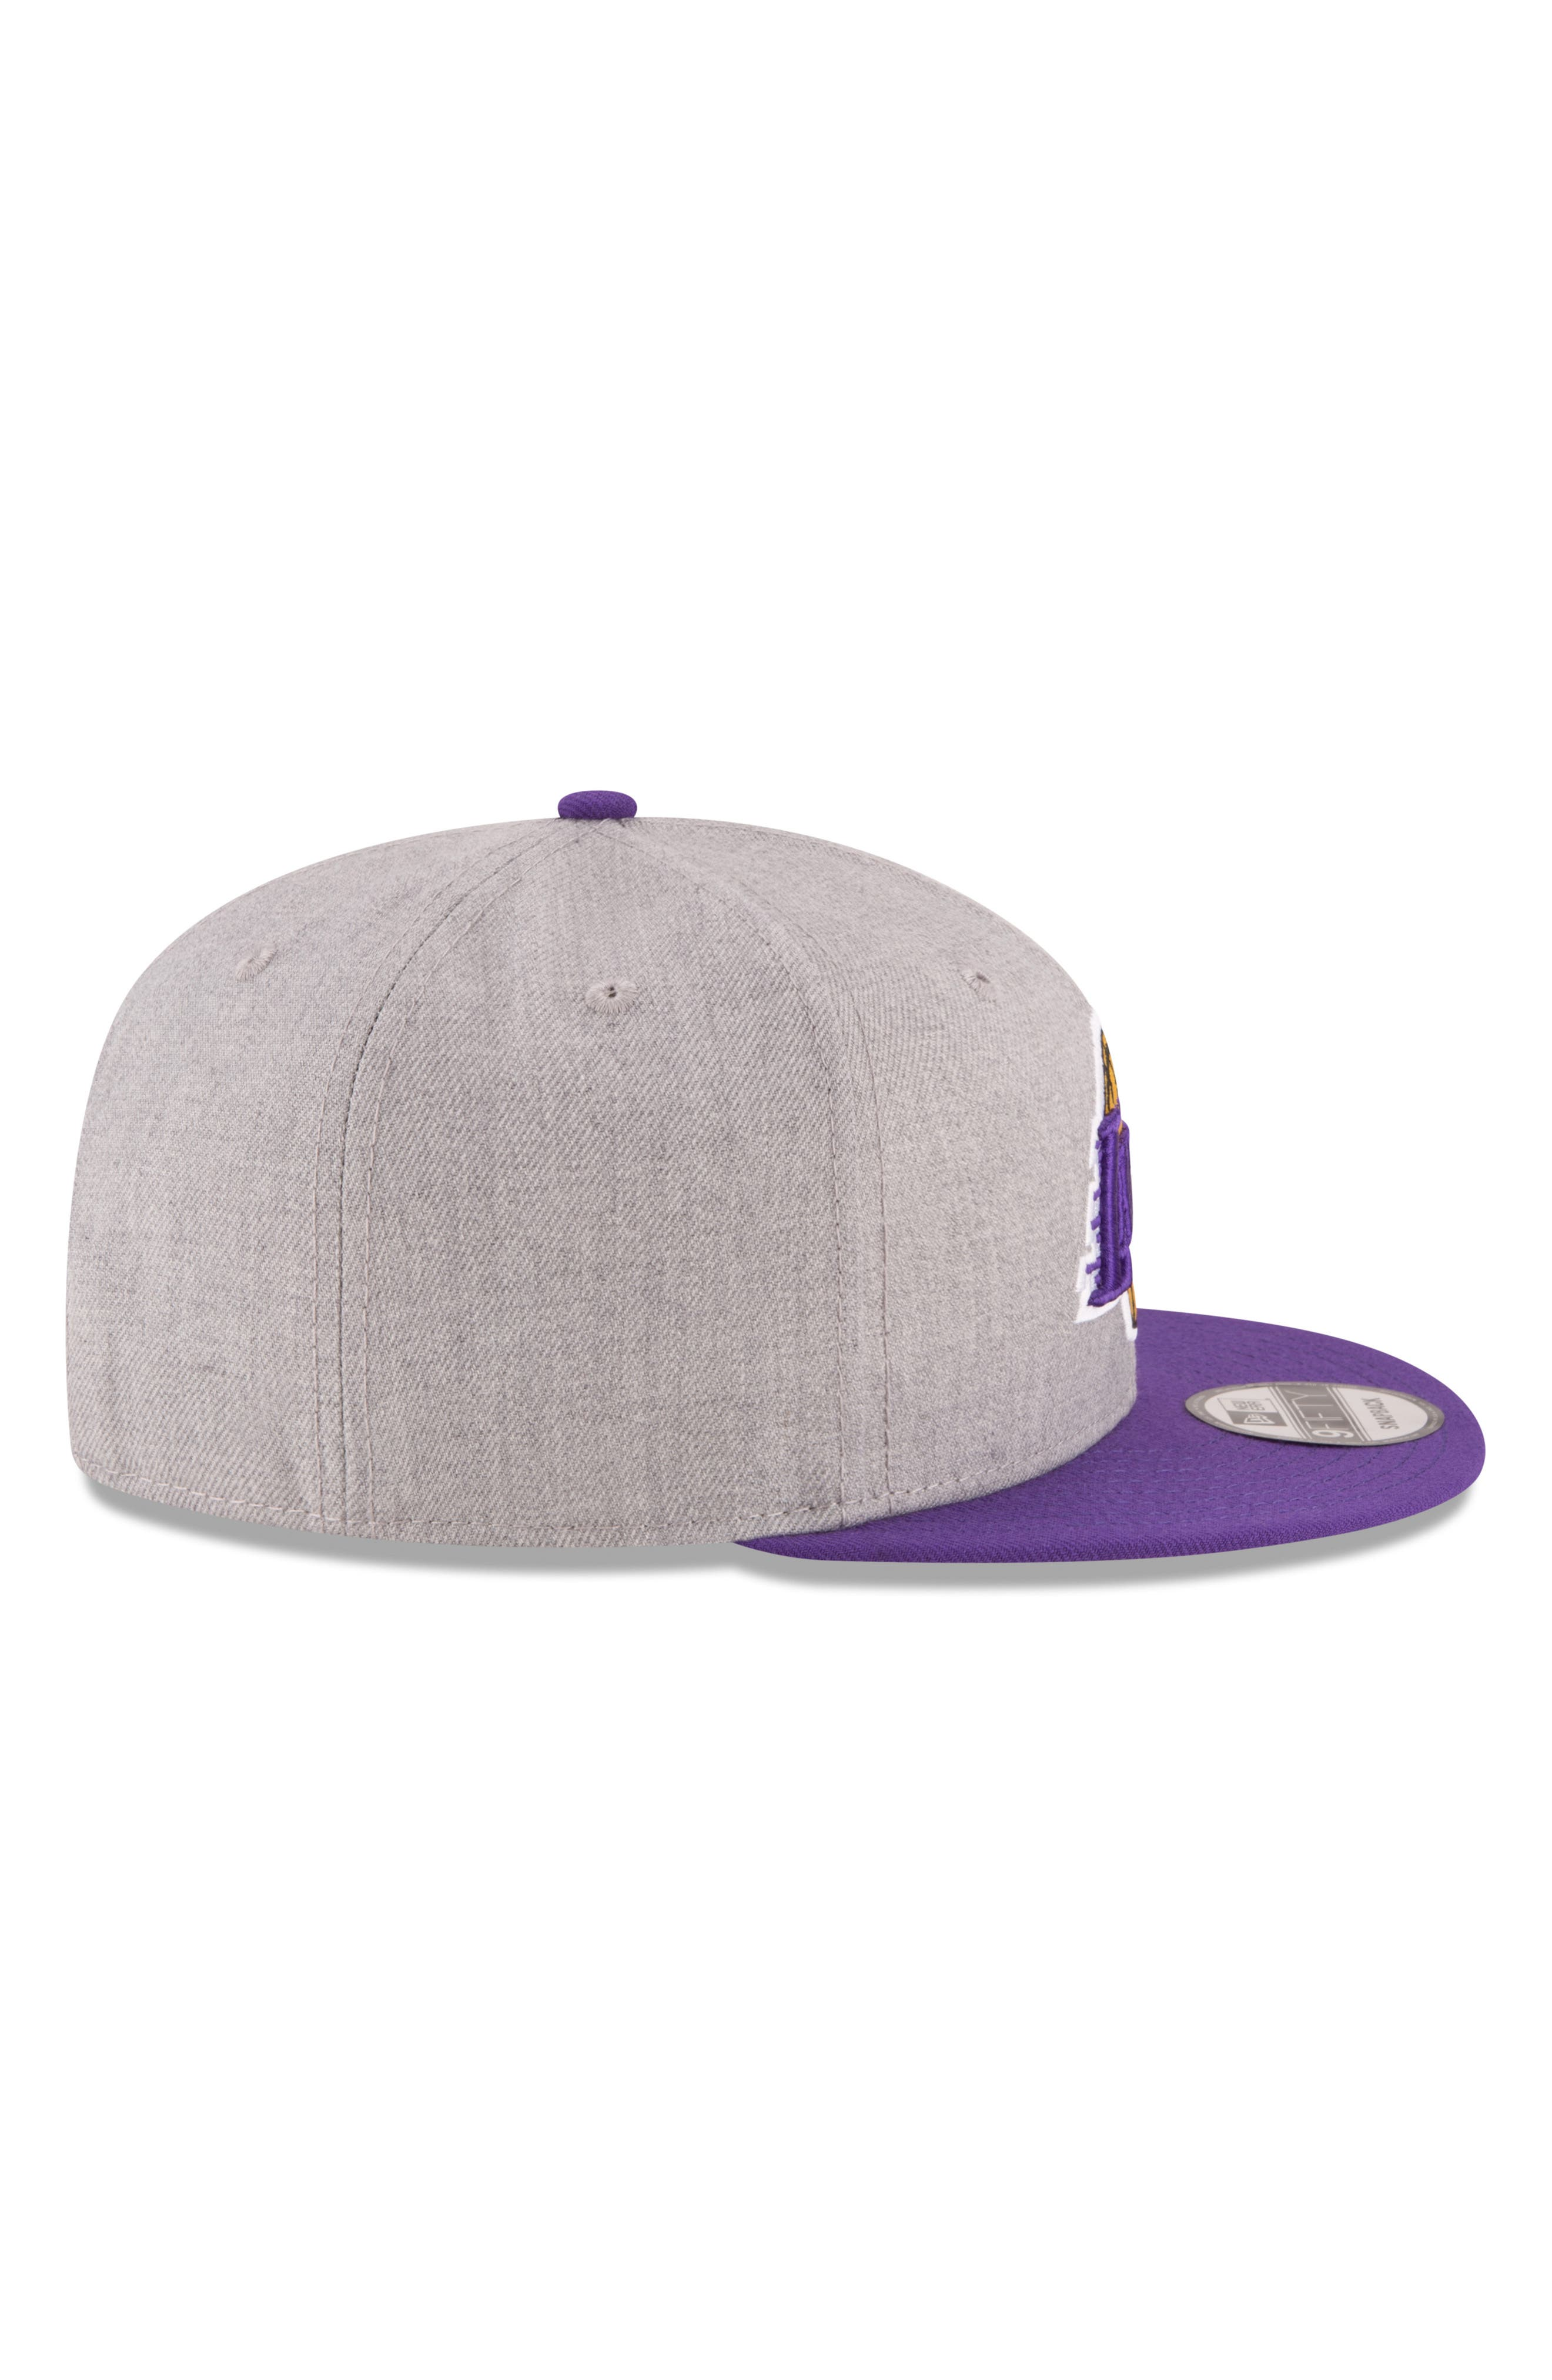 9FIFTY LA Lakers Two-Tone Cap,                             Alternate thumbnail 2, color,                             020